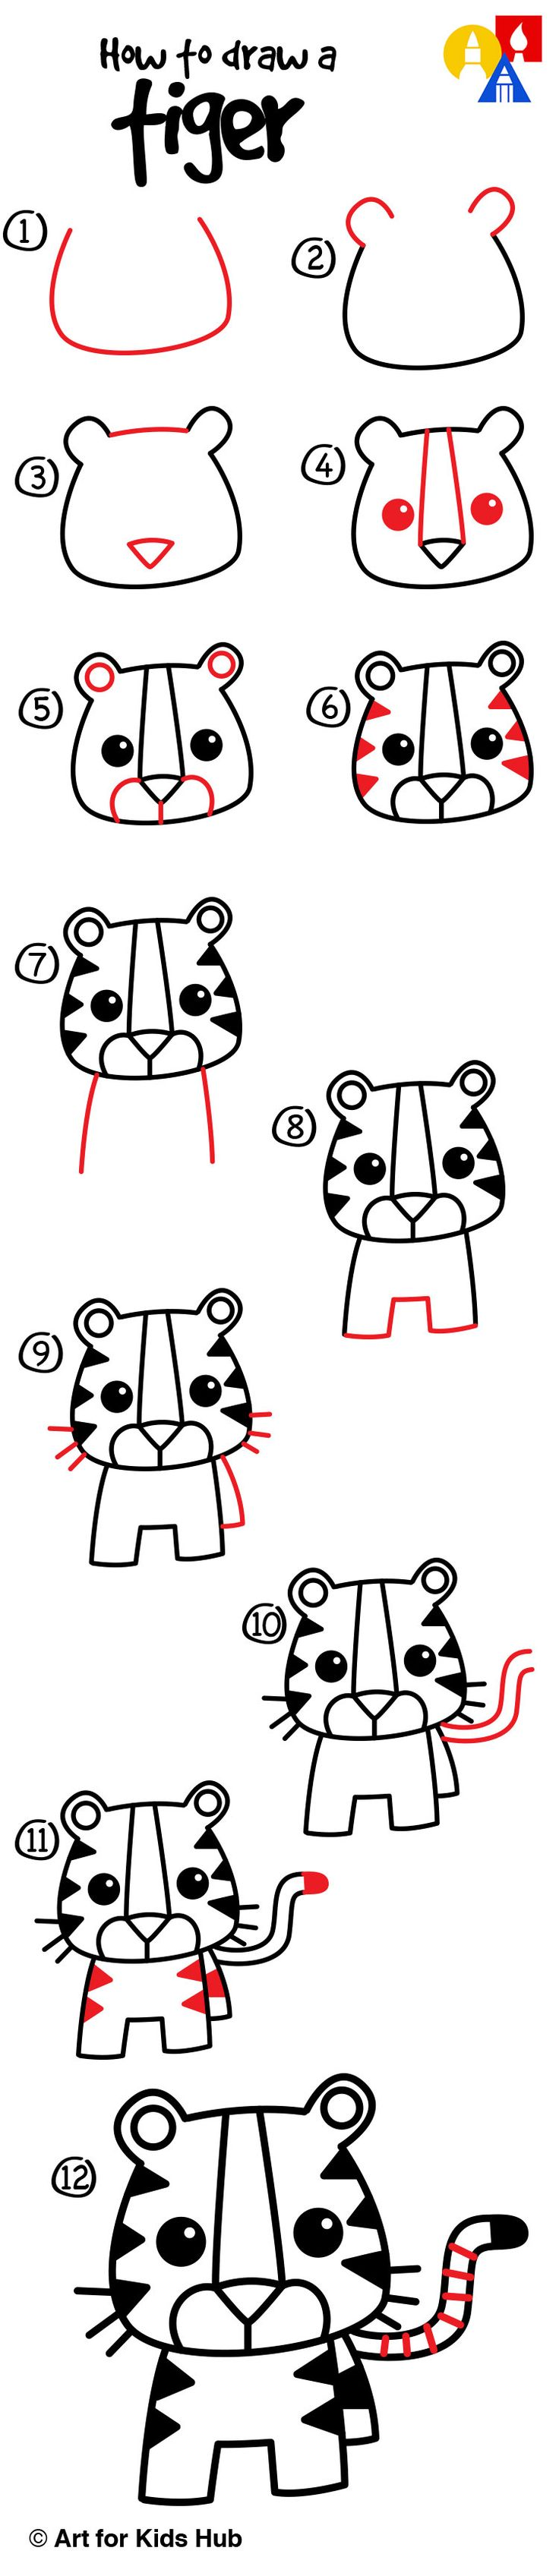 How to draw a cartoon tiger, just for kids!                                                                                                                                                                                 More